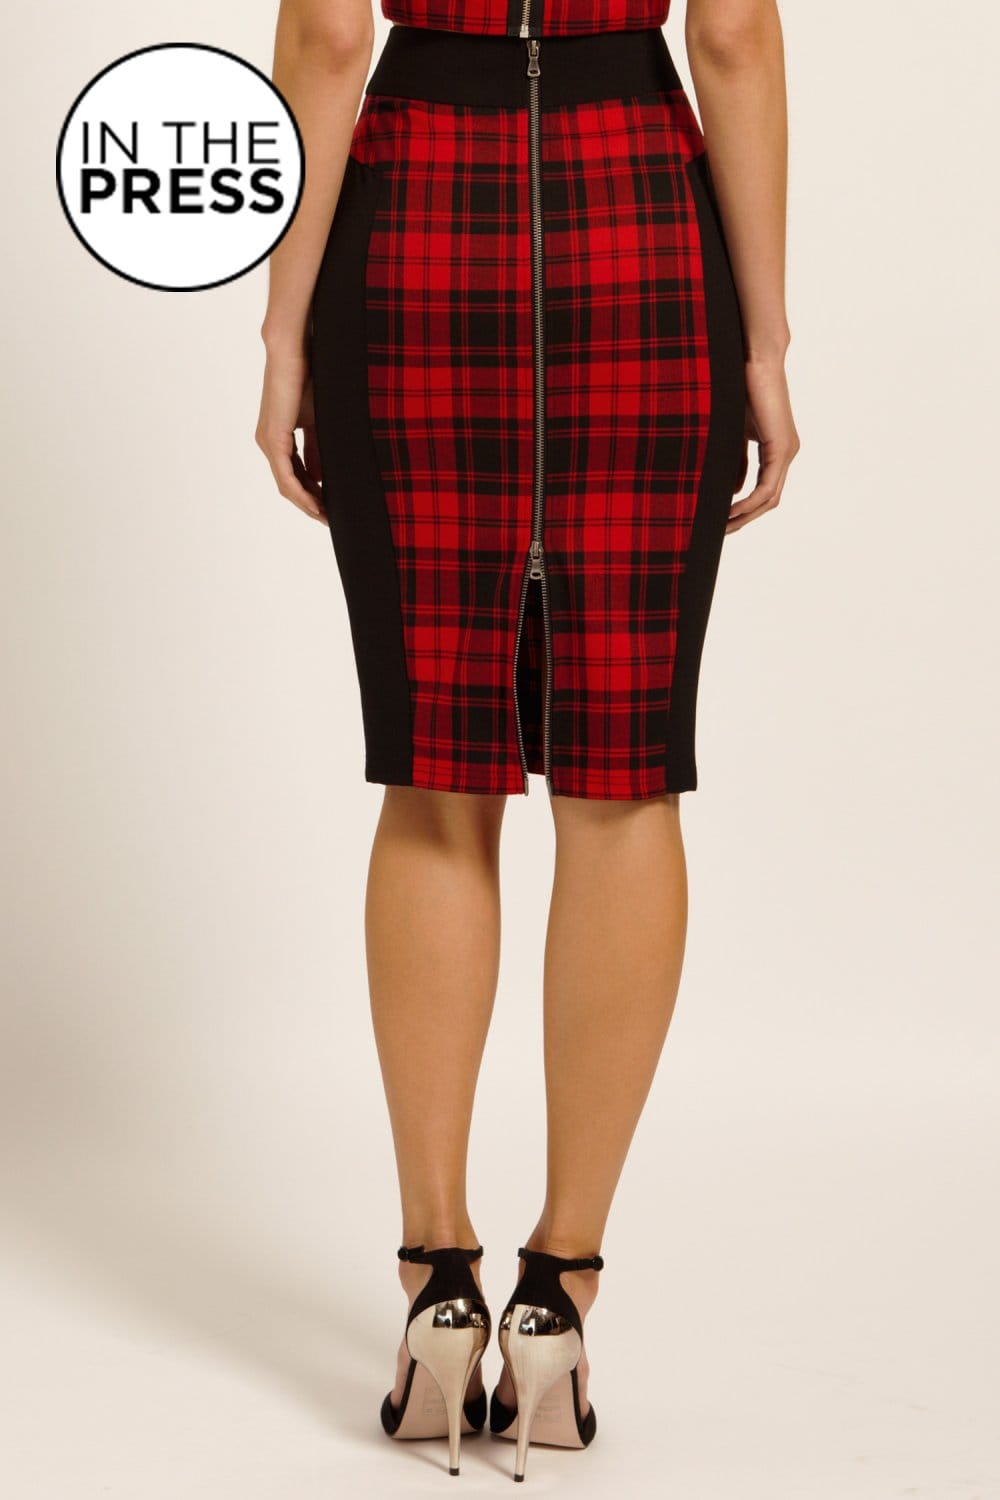 Select ladies skirts in a wide variety of tartans and colours in the fantastic selection available at Heritage of Scotland. Buy luxurious billie, pleated, tartan or tweed kilt online today.